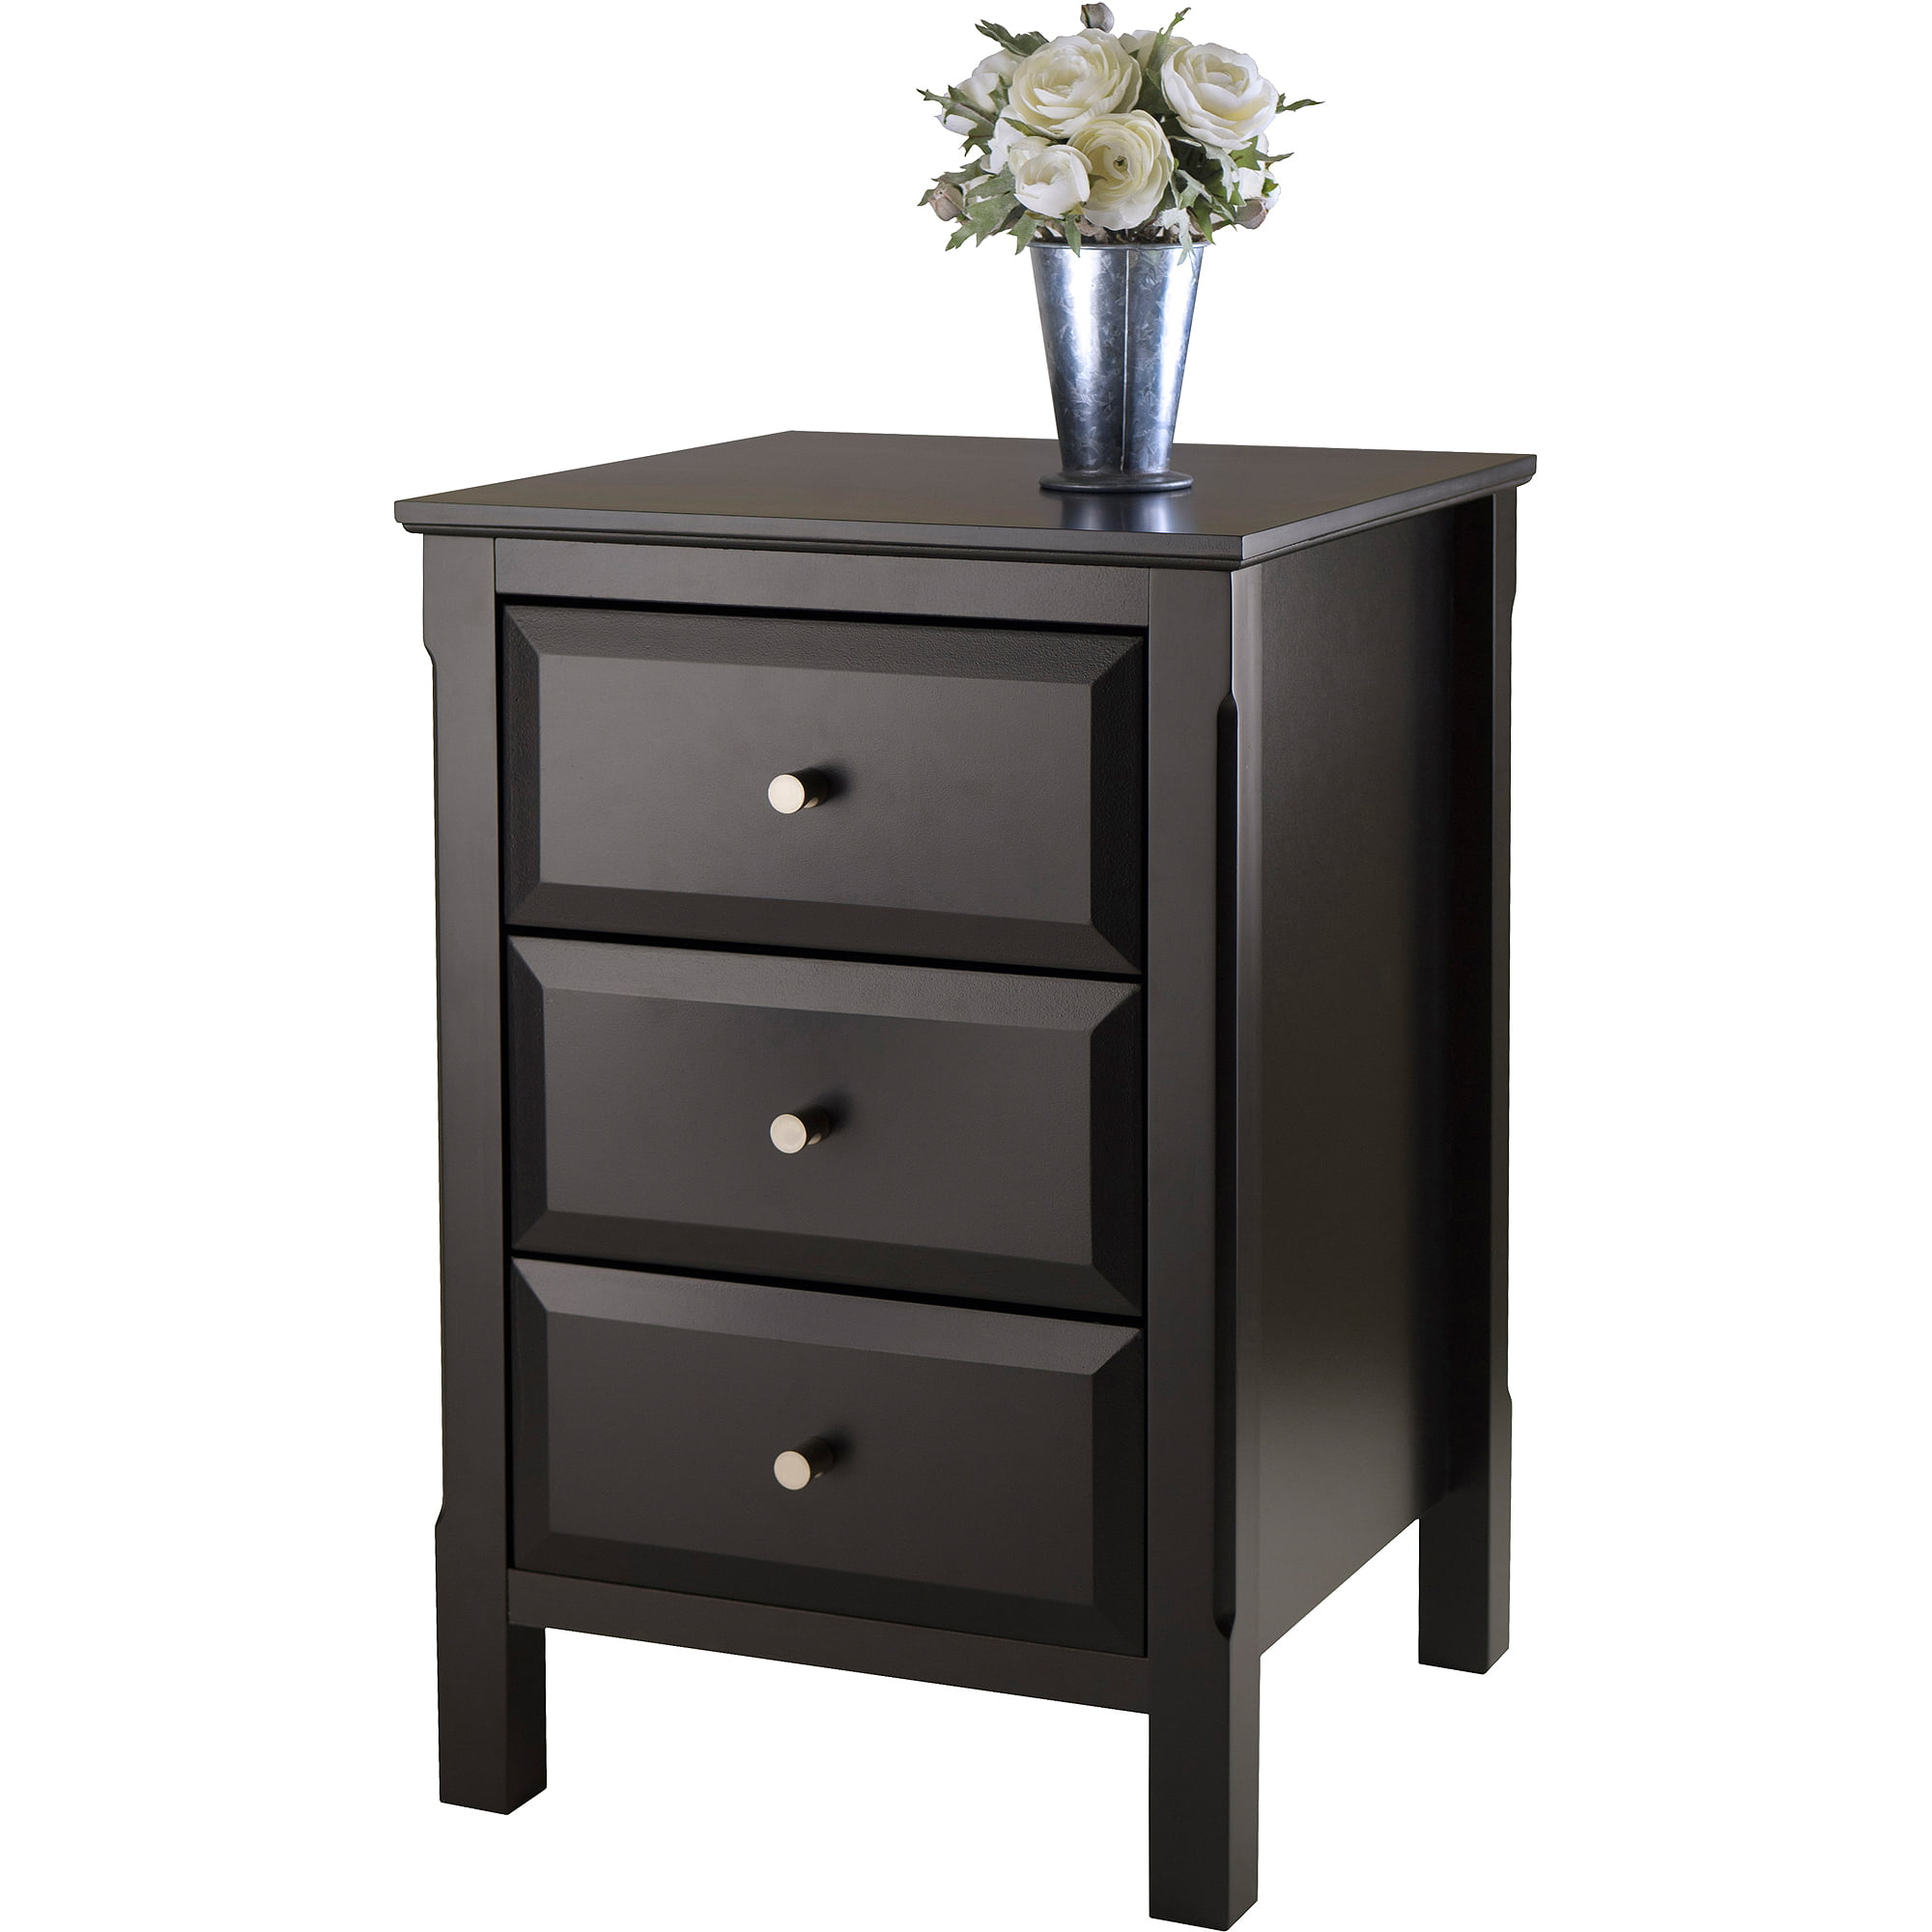 Black side table with drawer - Black Side Table With Drawer 52